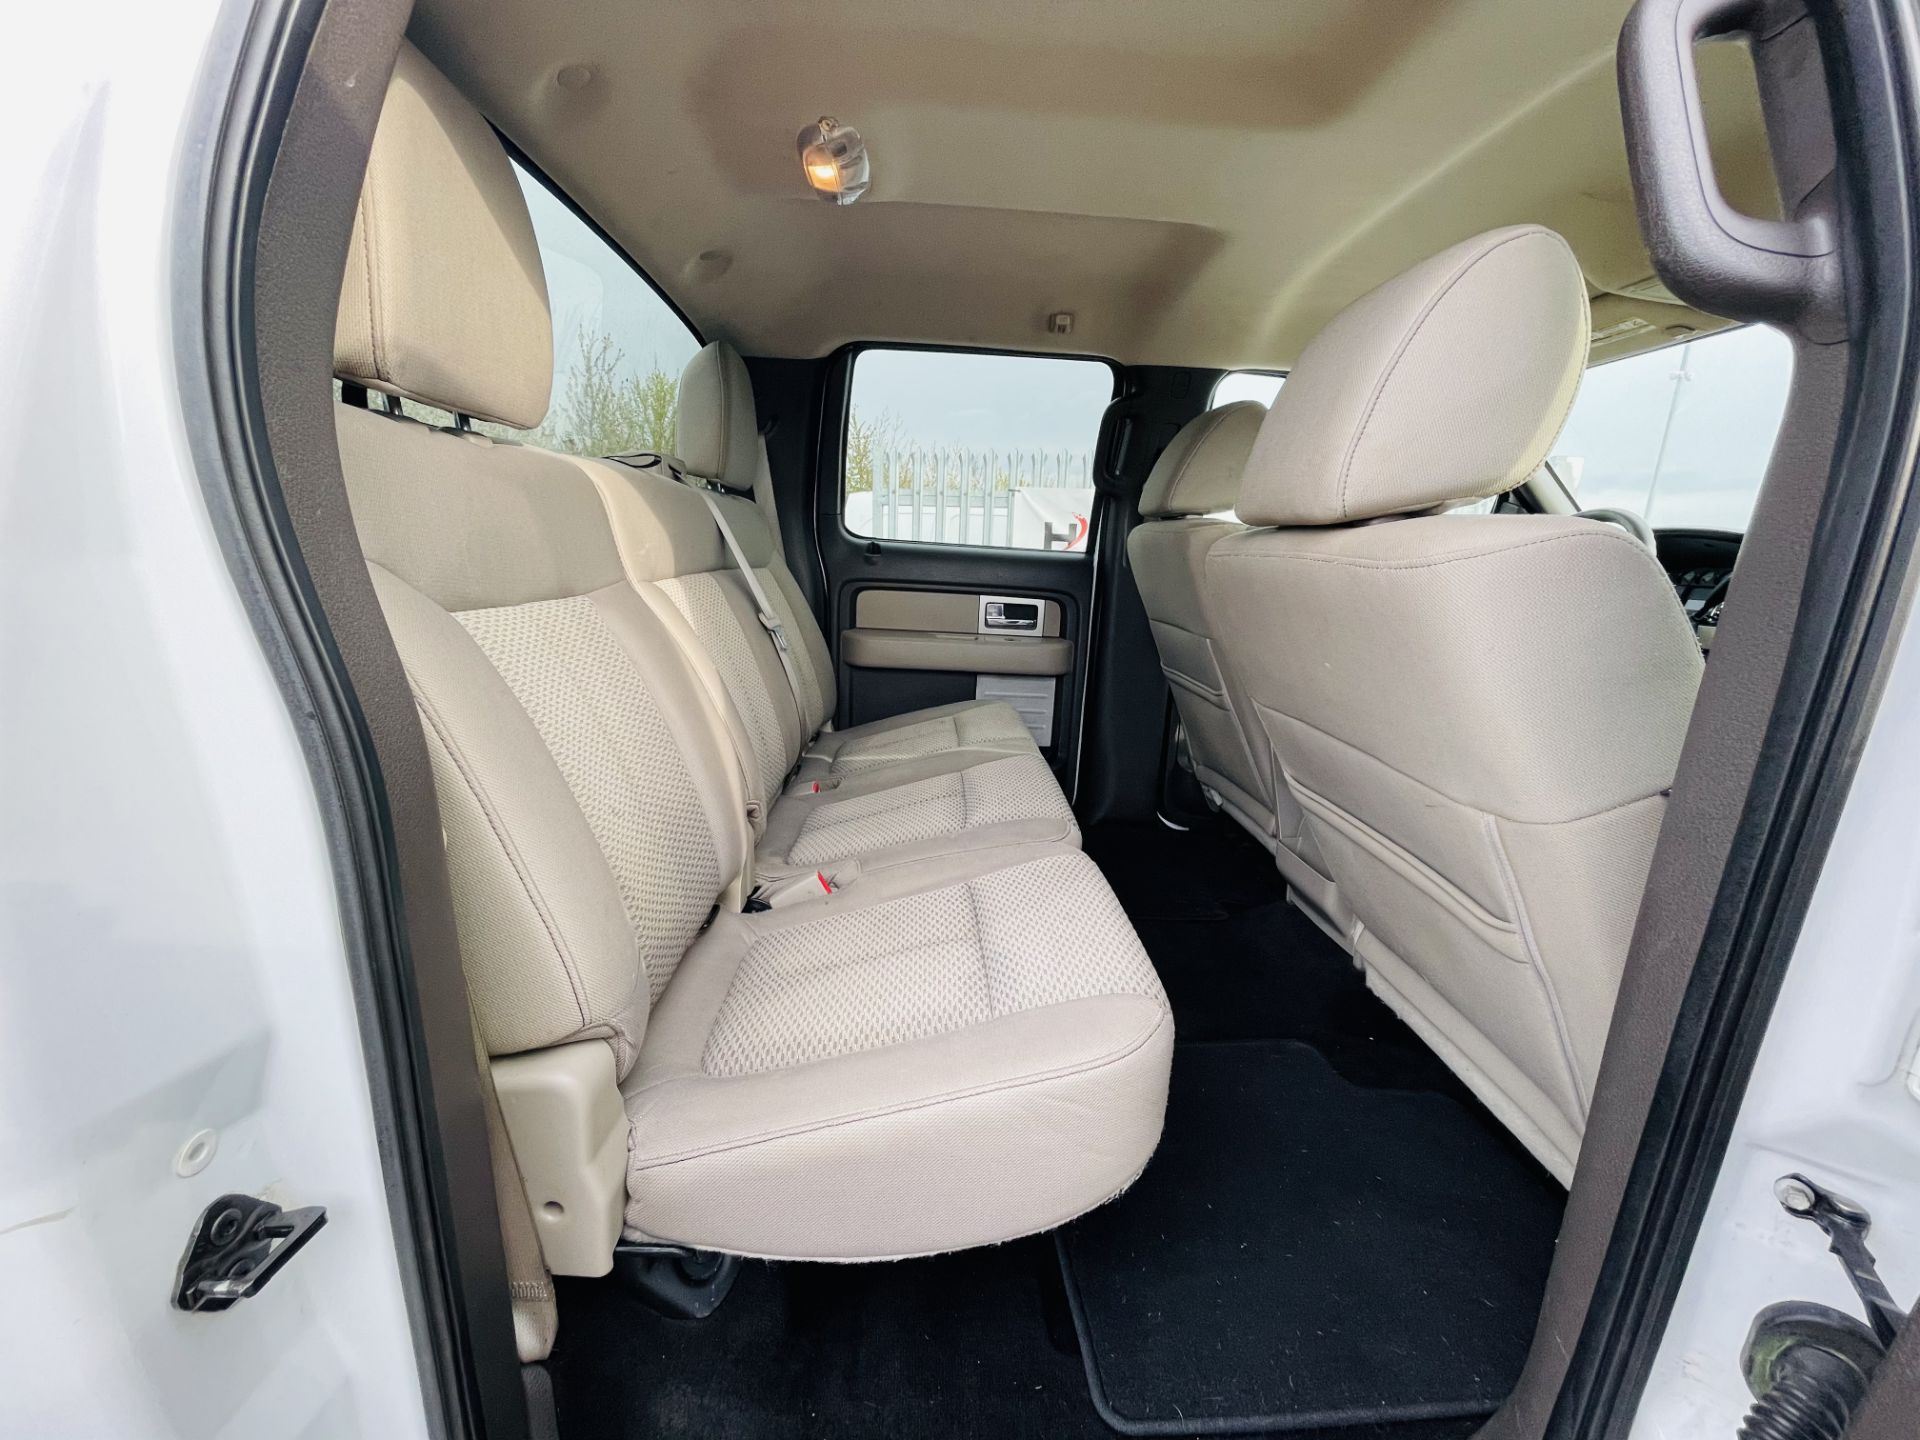 Ford F-150 XLT 4.6L V8 Super-crew 4WD 2010 ' 2010 Year' 6 Seats - Air con - NO RESERVE - Image 19 of 24